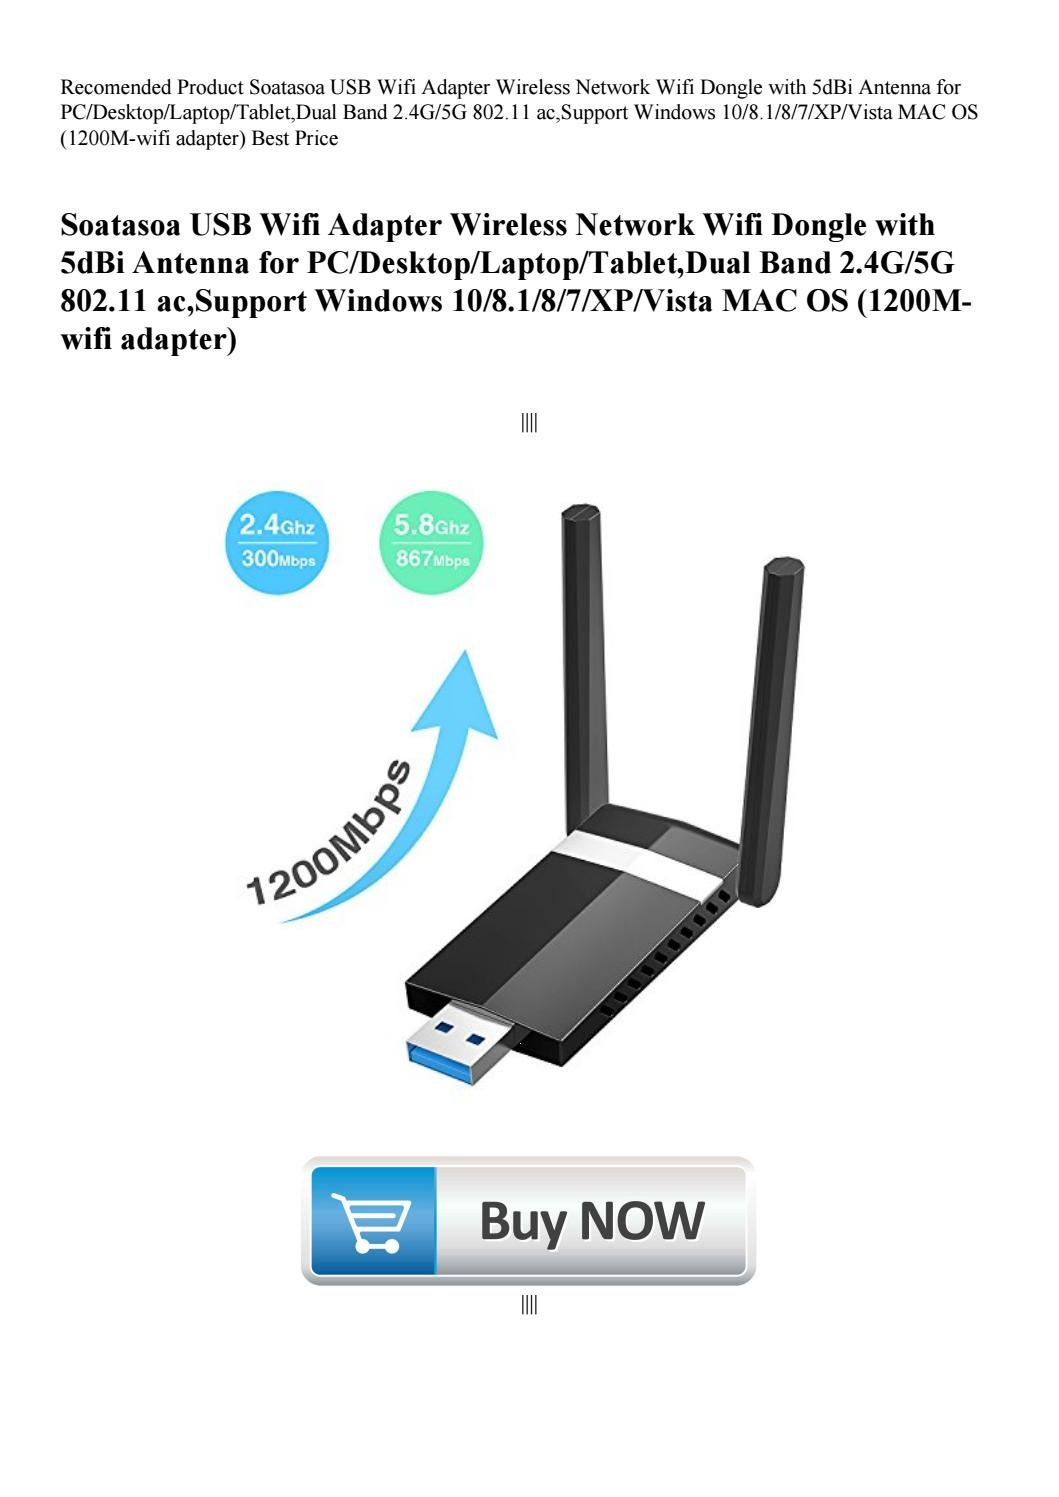 etc. ASHATA 1200M Dual Frequency Wireless Network Card USB WiFi Adapter Receiver for Mobilephones Tablets